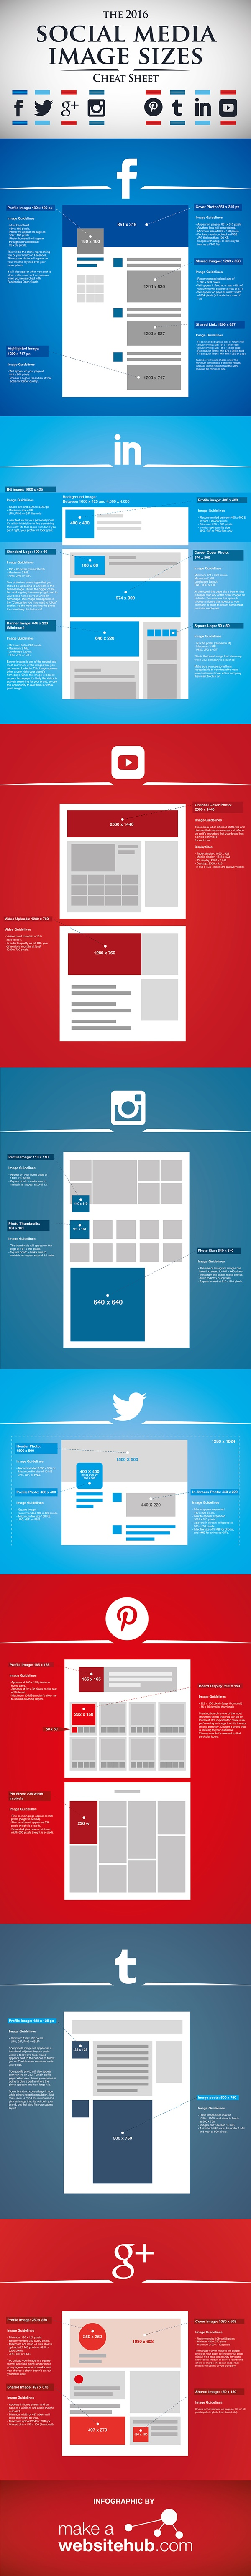 2016 Social Media Image Sizes Cheat Sheet | SEJ